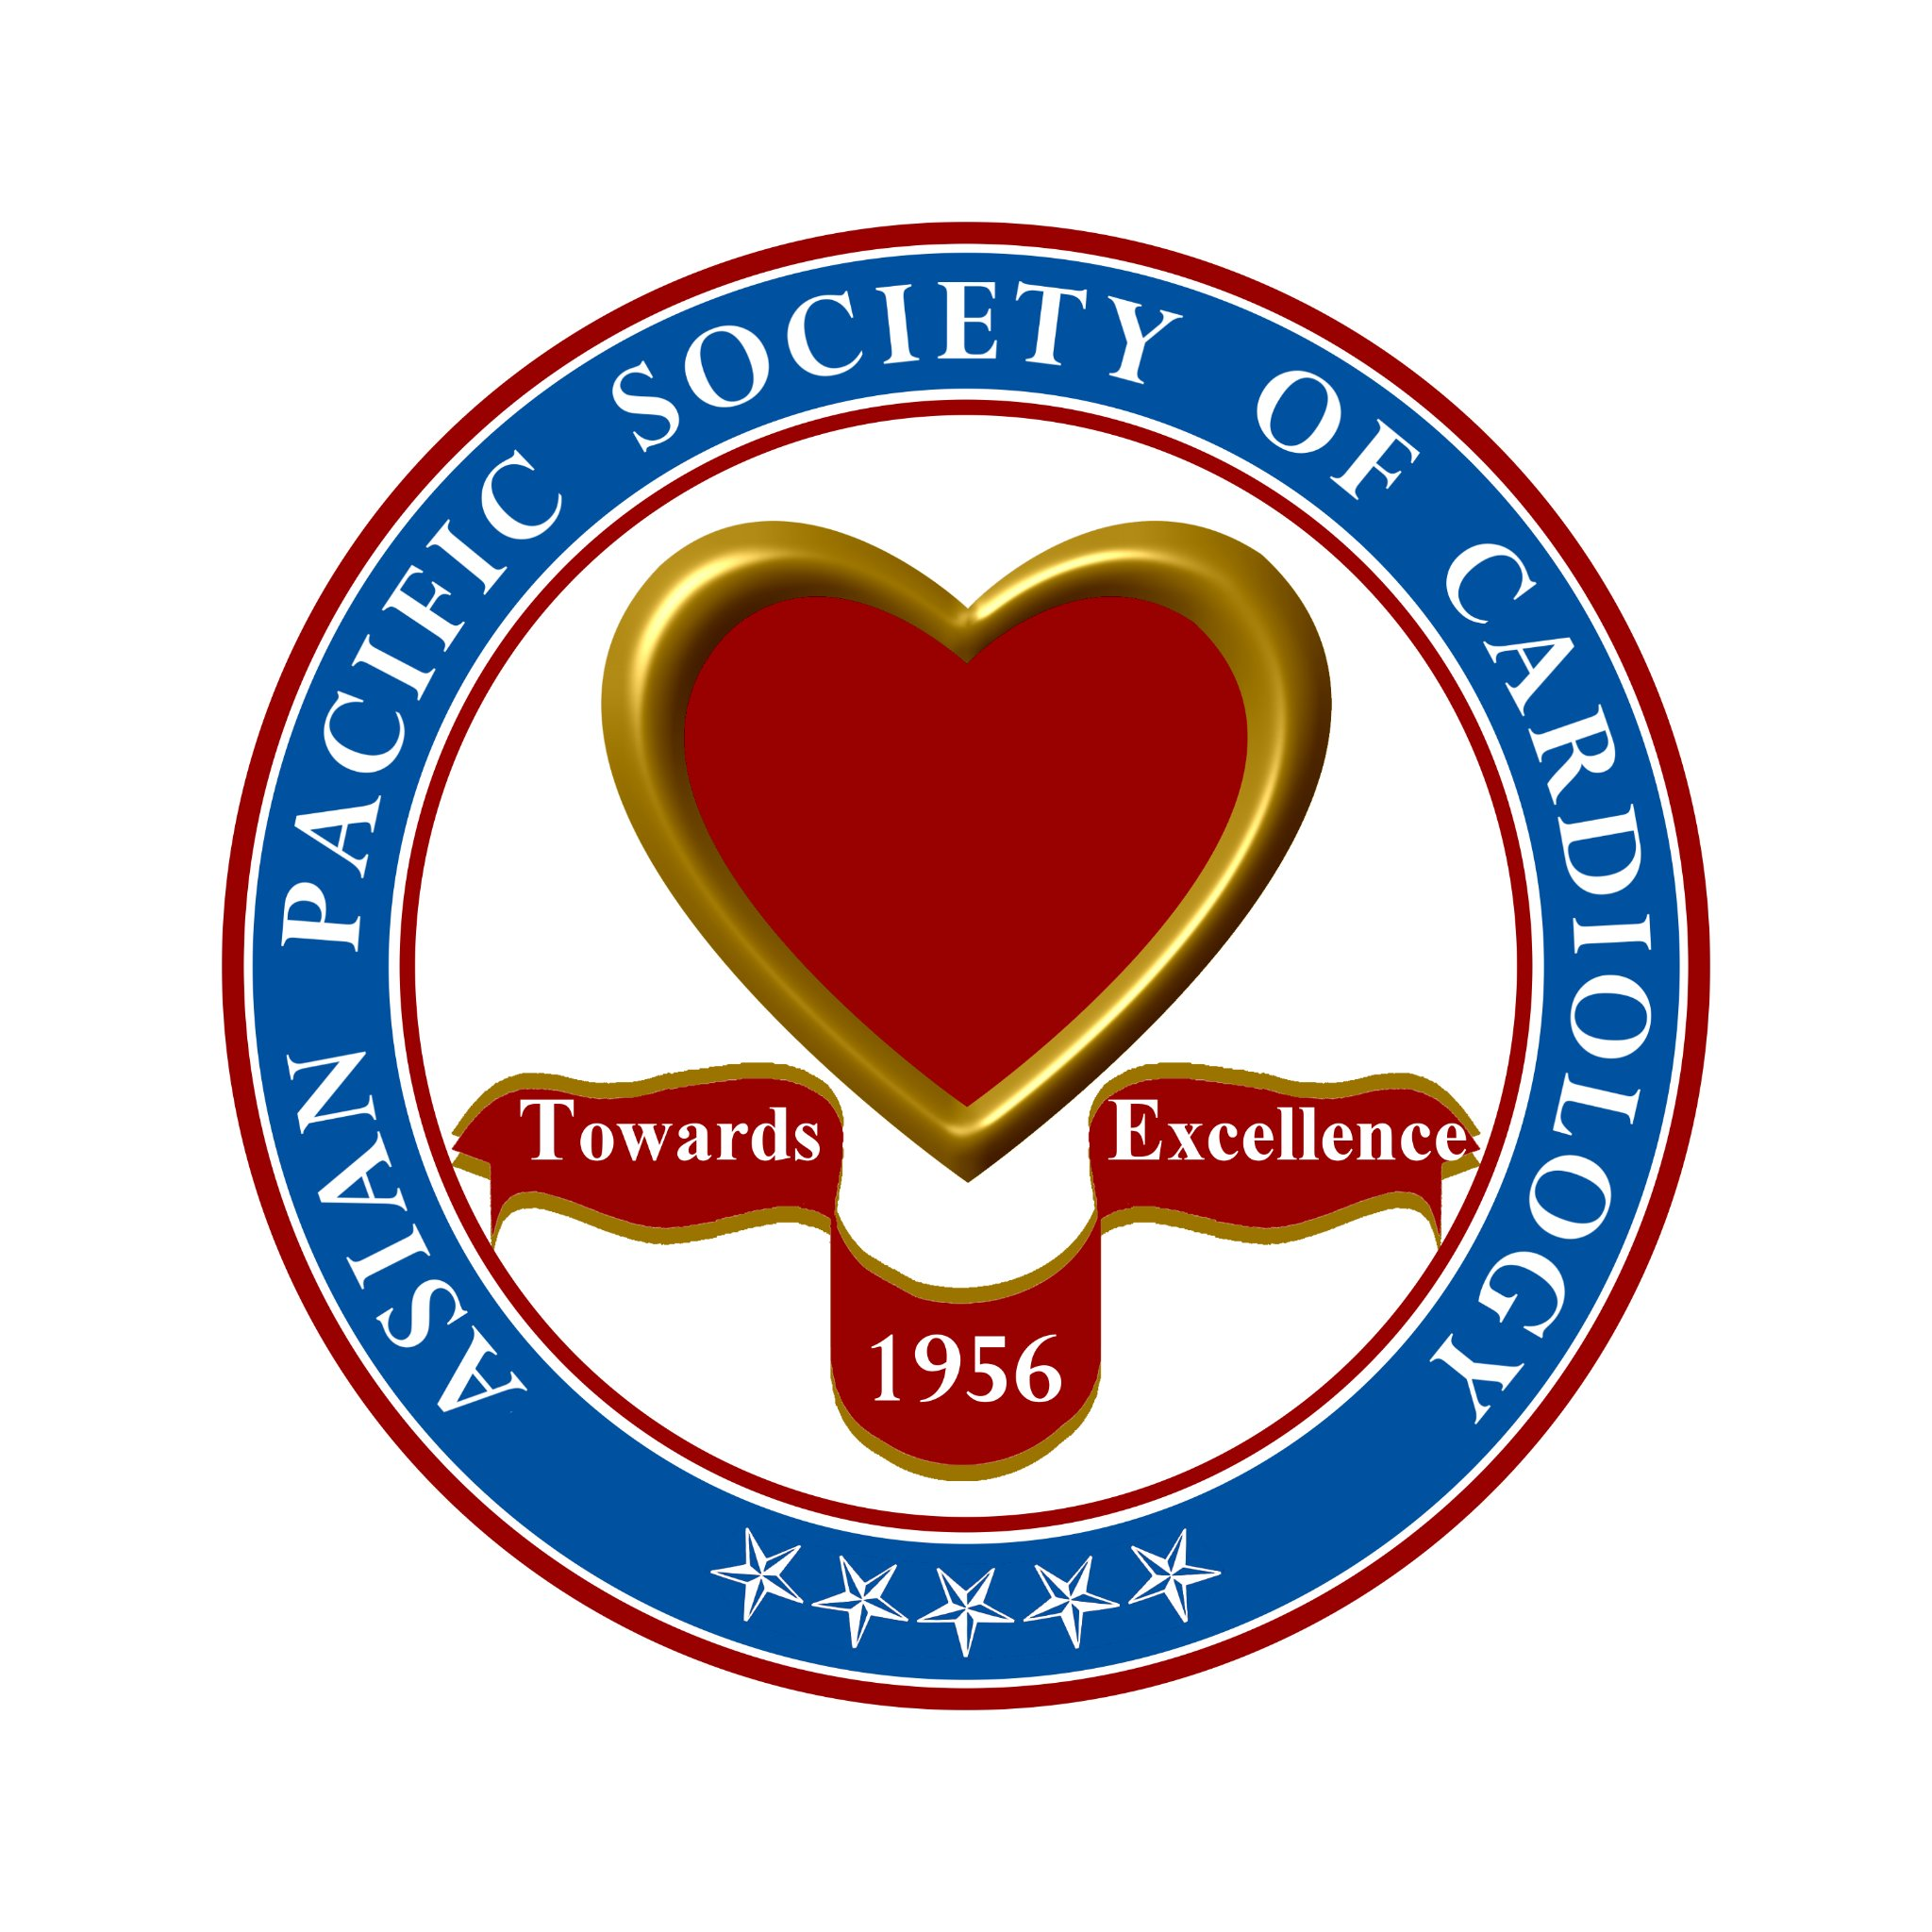 APSC 2020 - Congress of The Asian Pacific Society of Cardiology